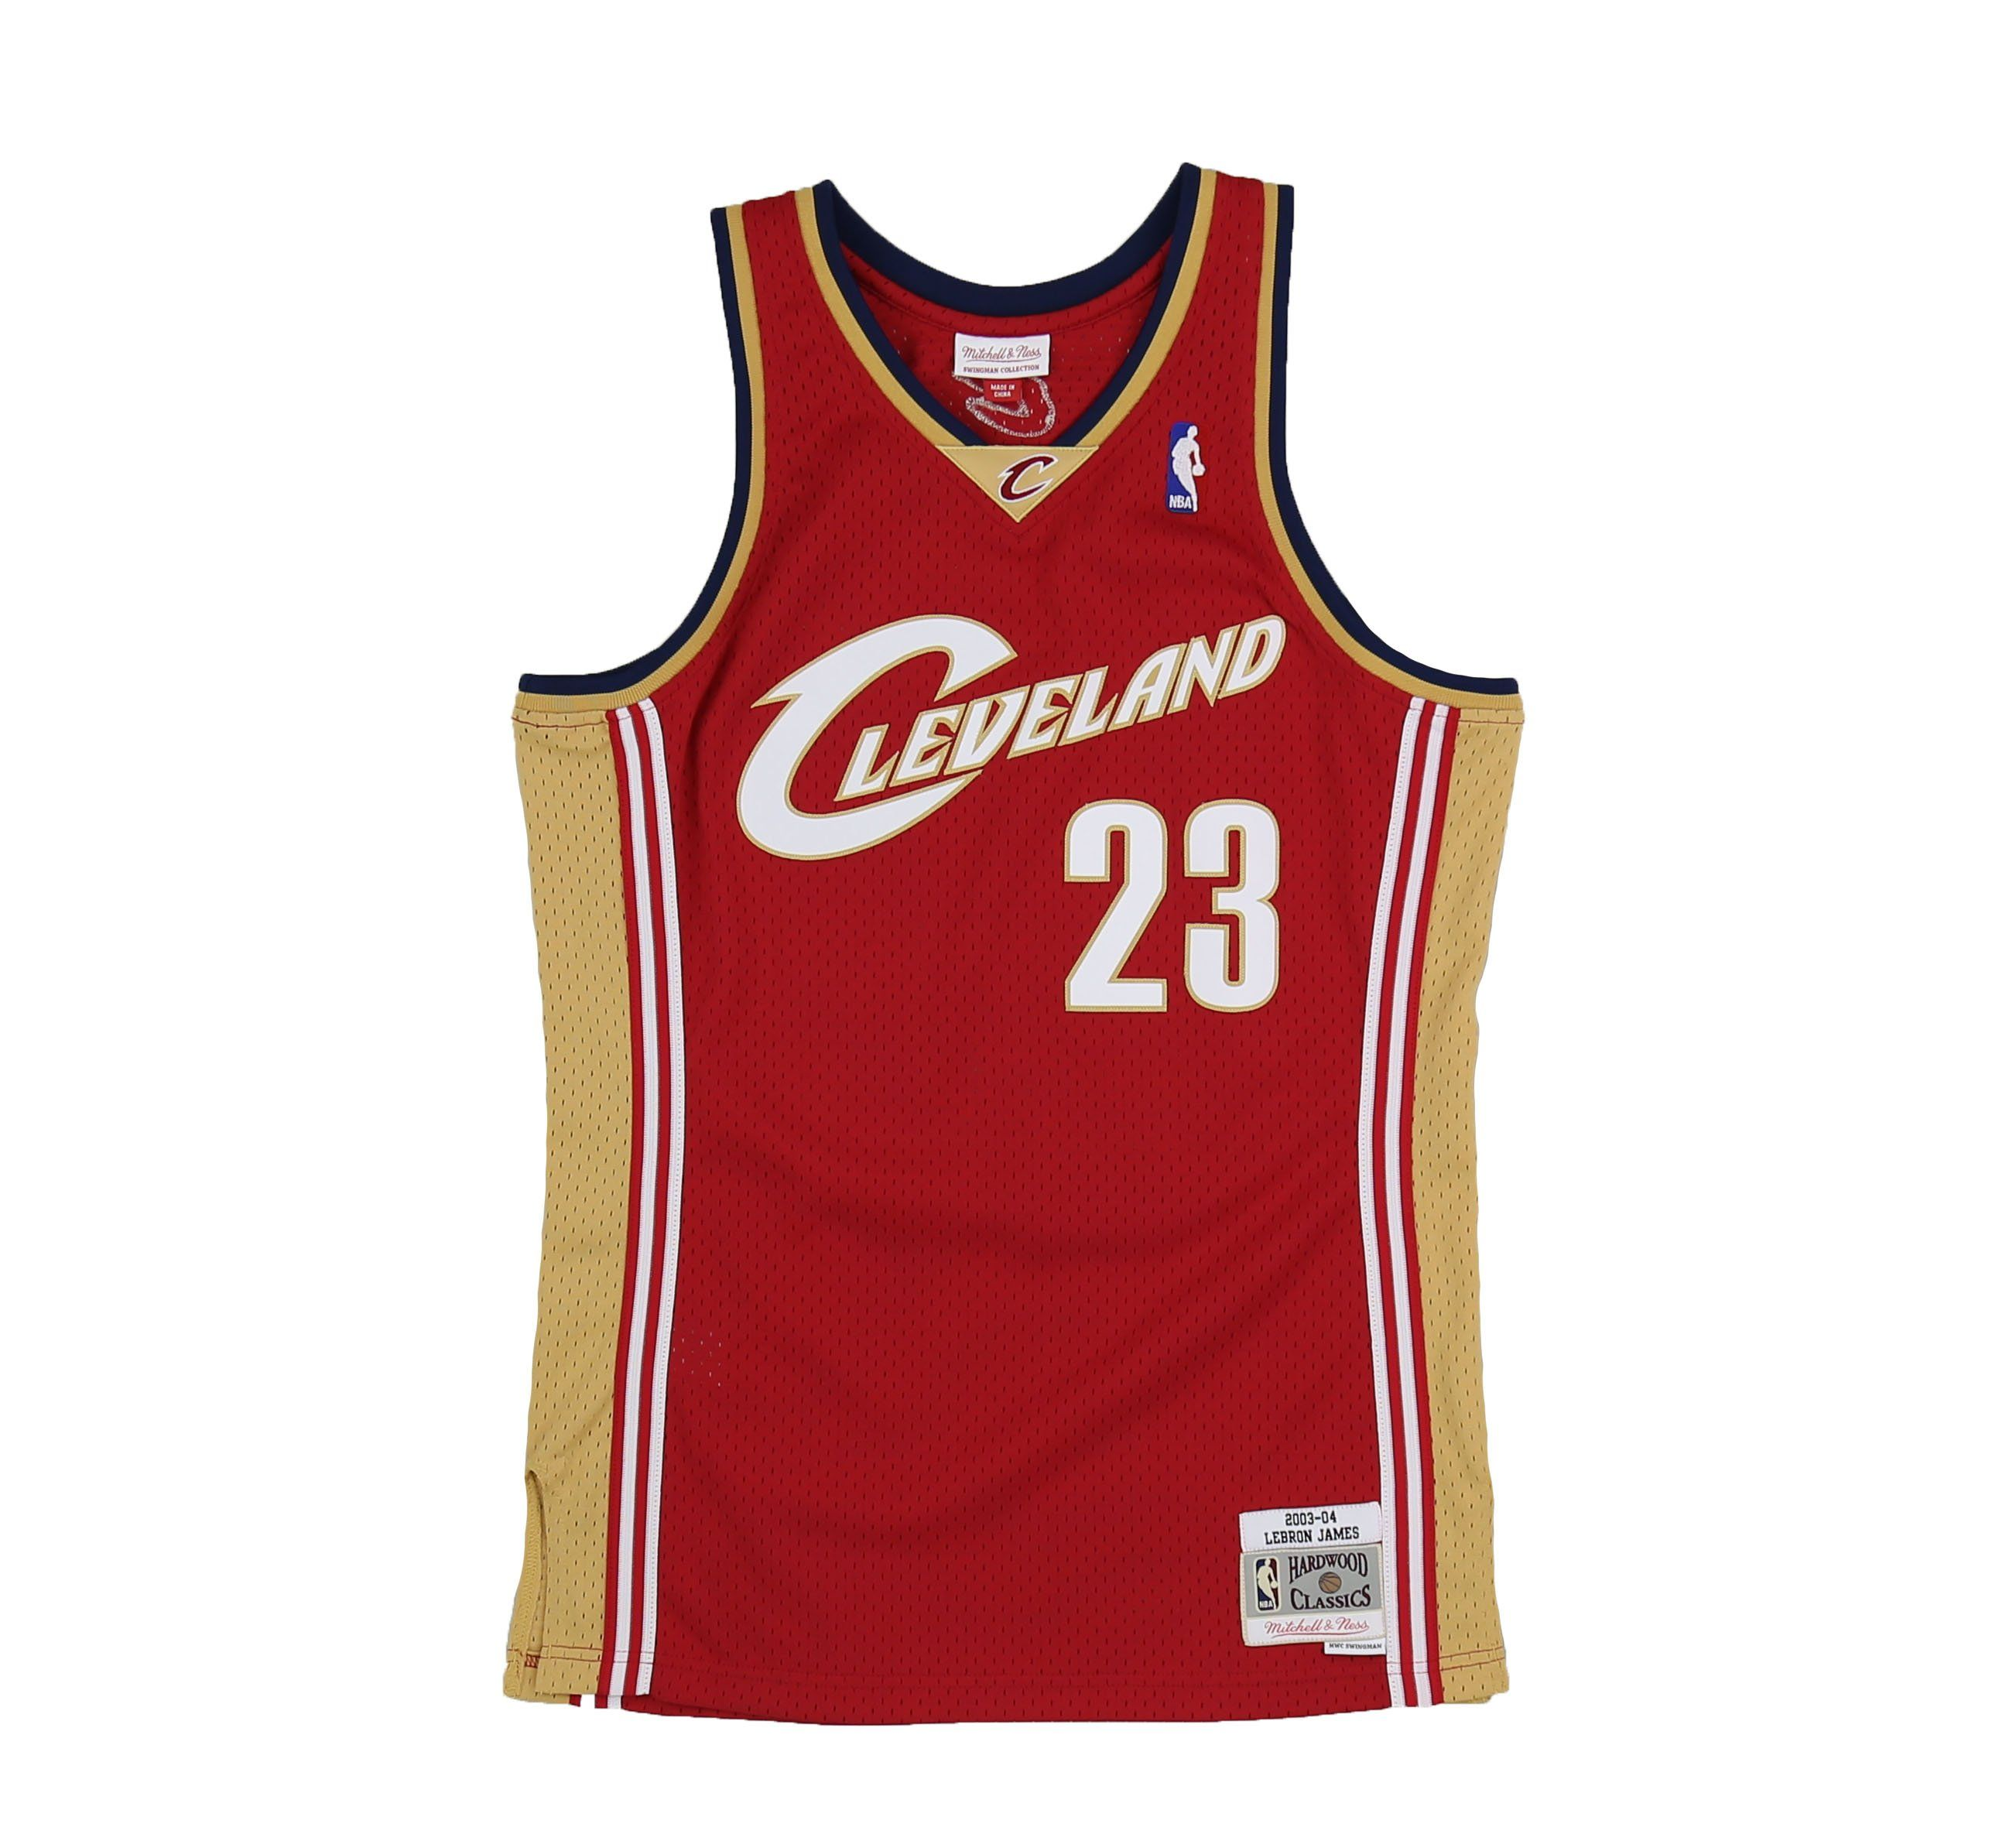 wholesale dealer 27e50 38b81 CLEVELAND CAVALIERS LEBRON JAMES #23 SWINGMAN JERSEY -